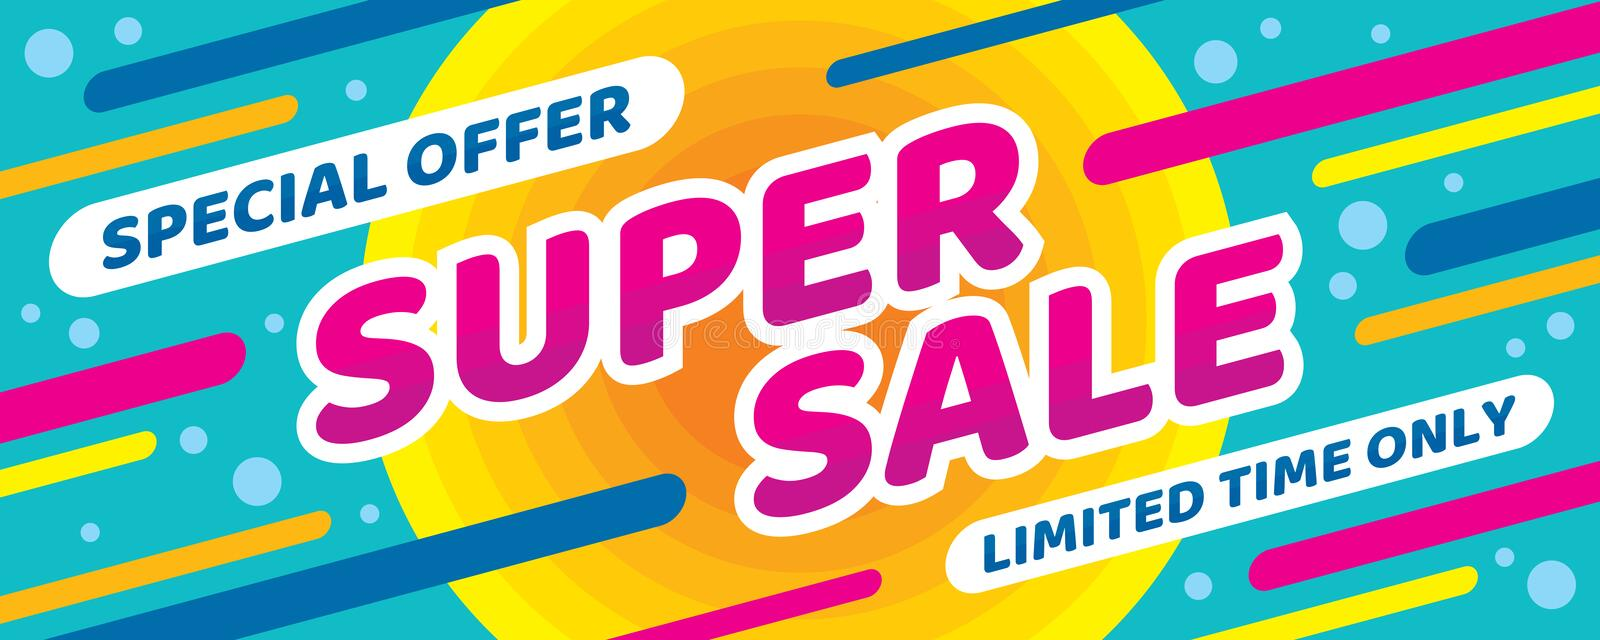 Super sale discount - vector layout concept illustration. Abstract horizontal advertising promotion banner. Special offer. Limited royalty free illustration